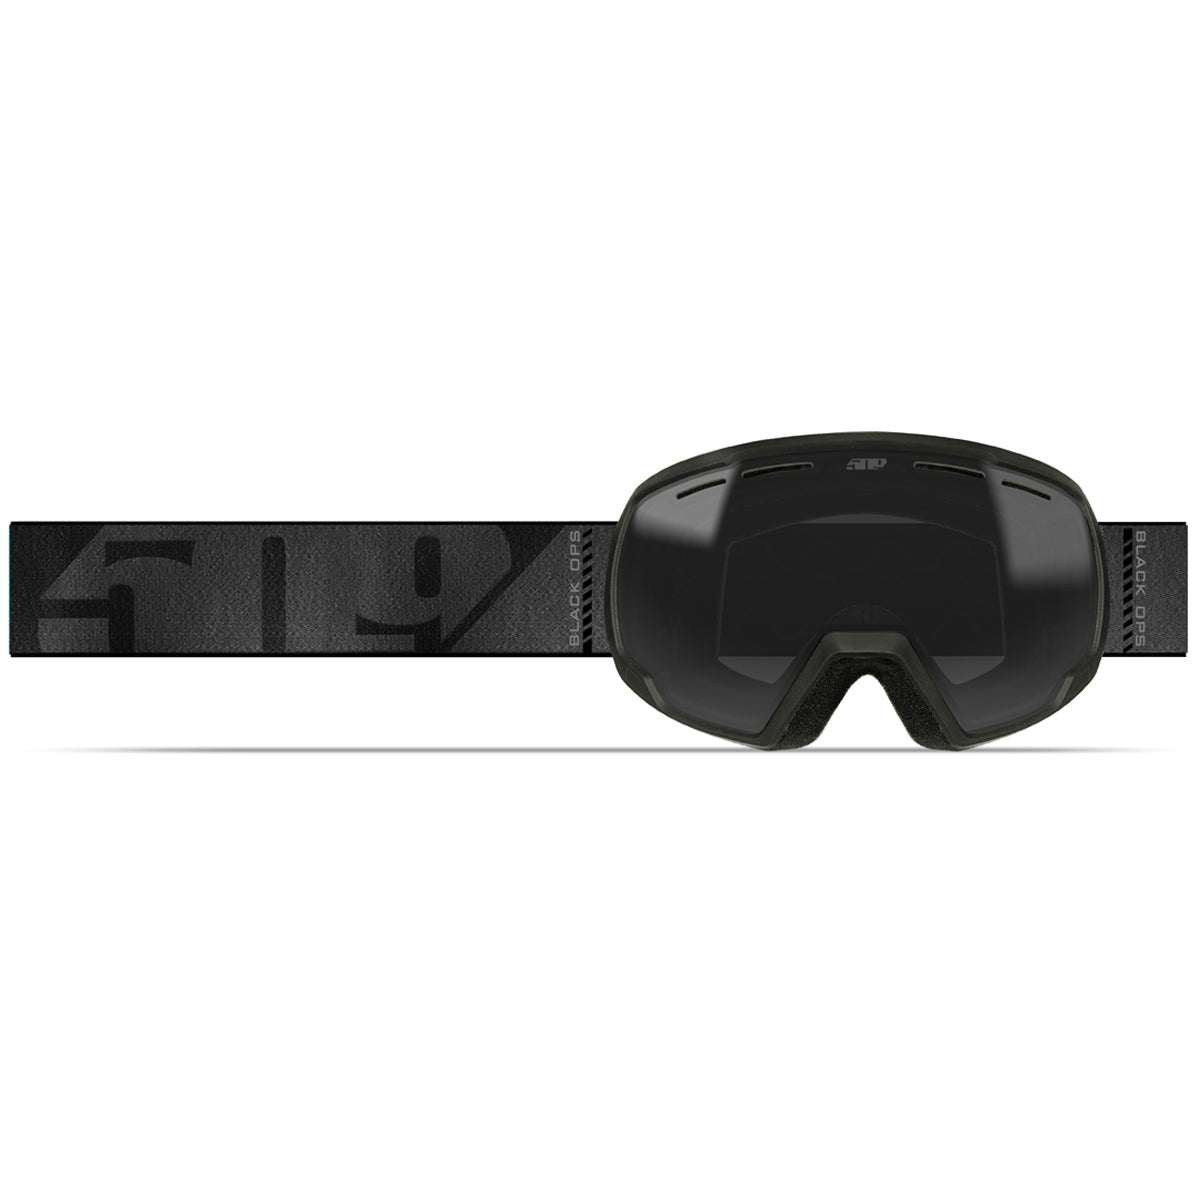 Ripper 2.0 Youth Goggle